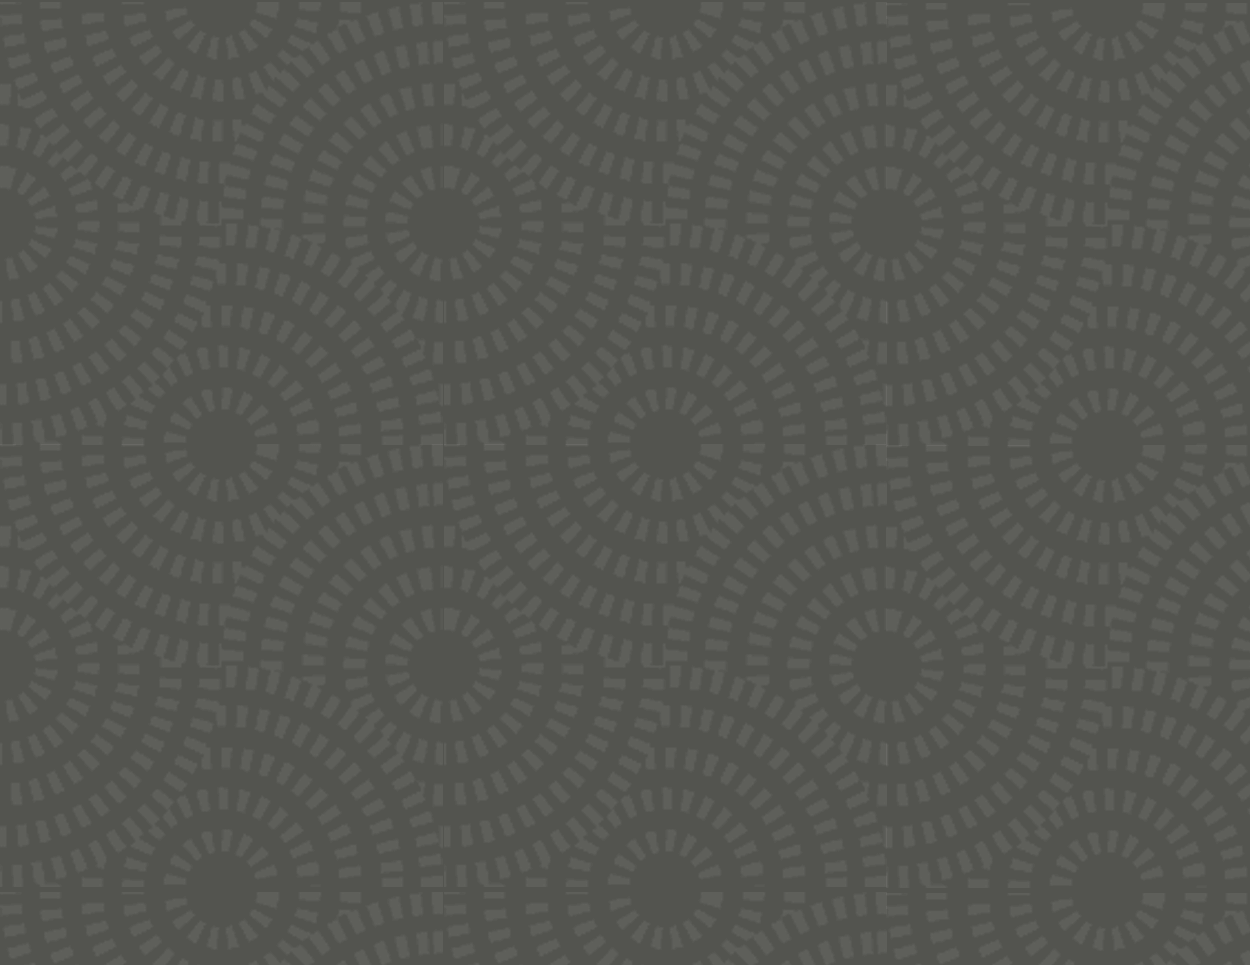 swirls gray background